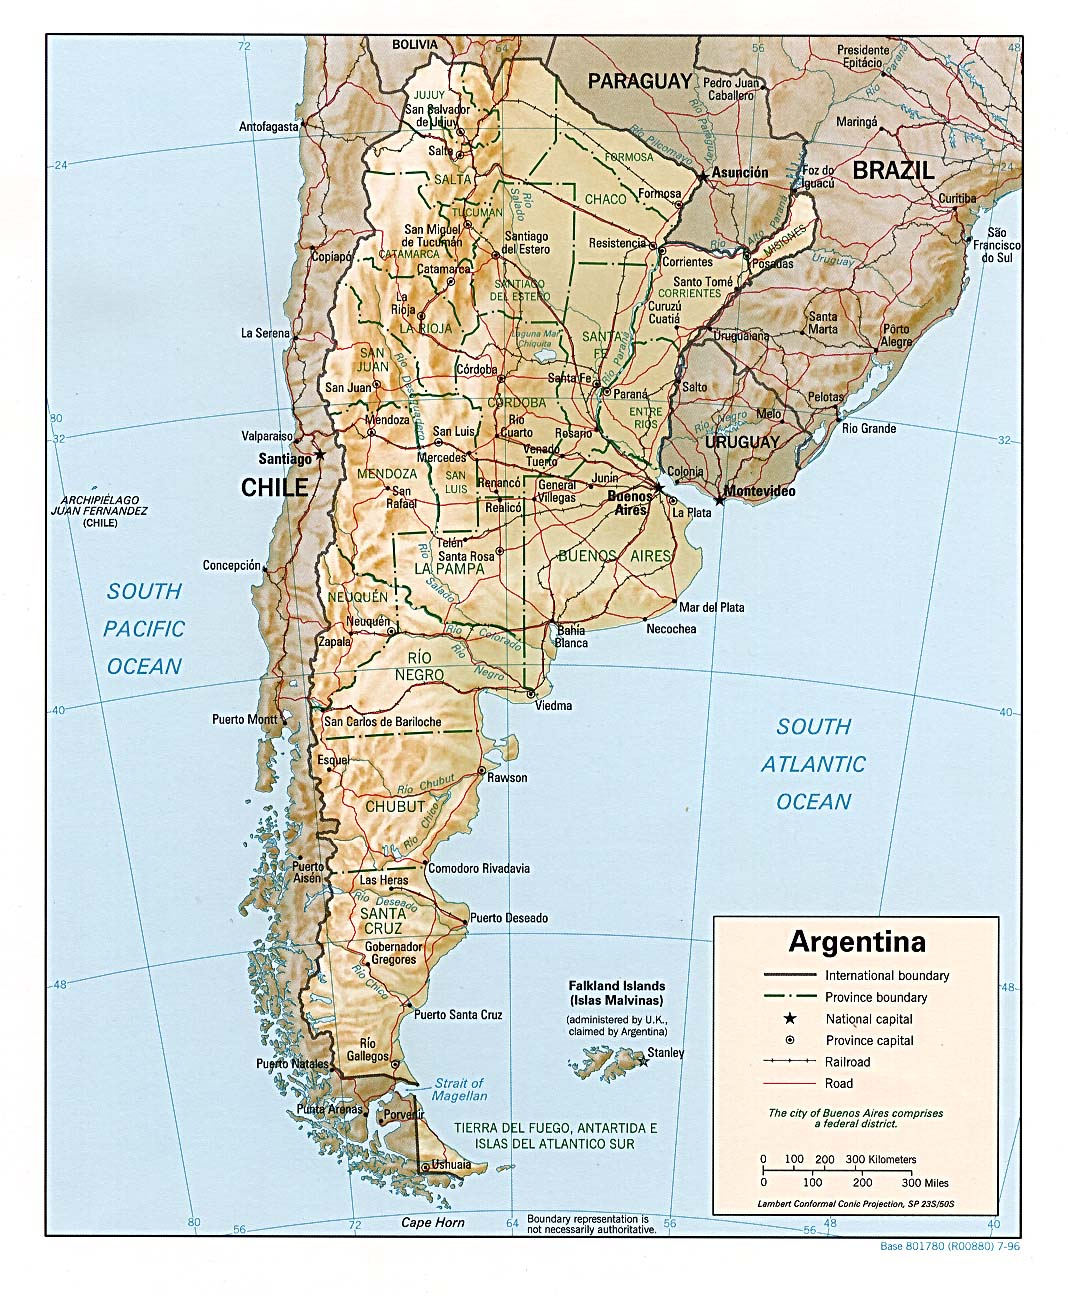 Argentina Maps - Perry-Castañeda Map Collection - UT Library Online